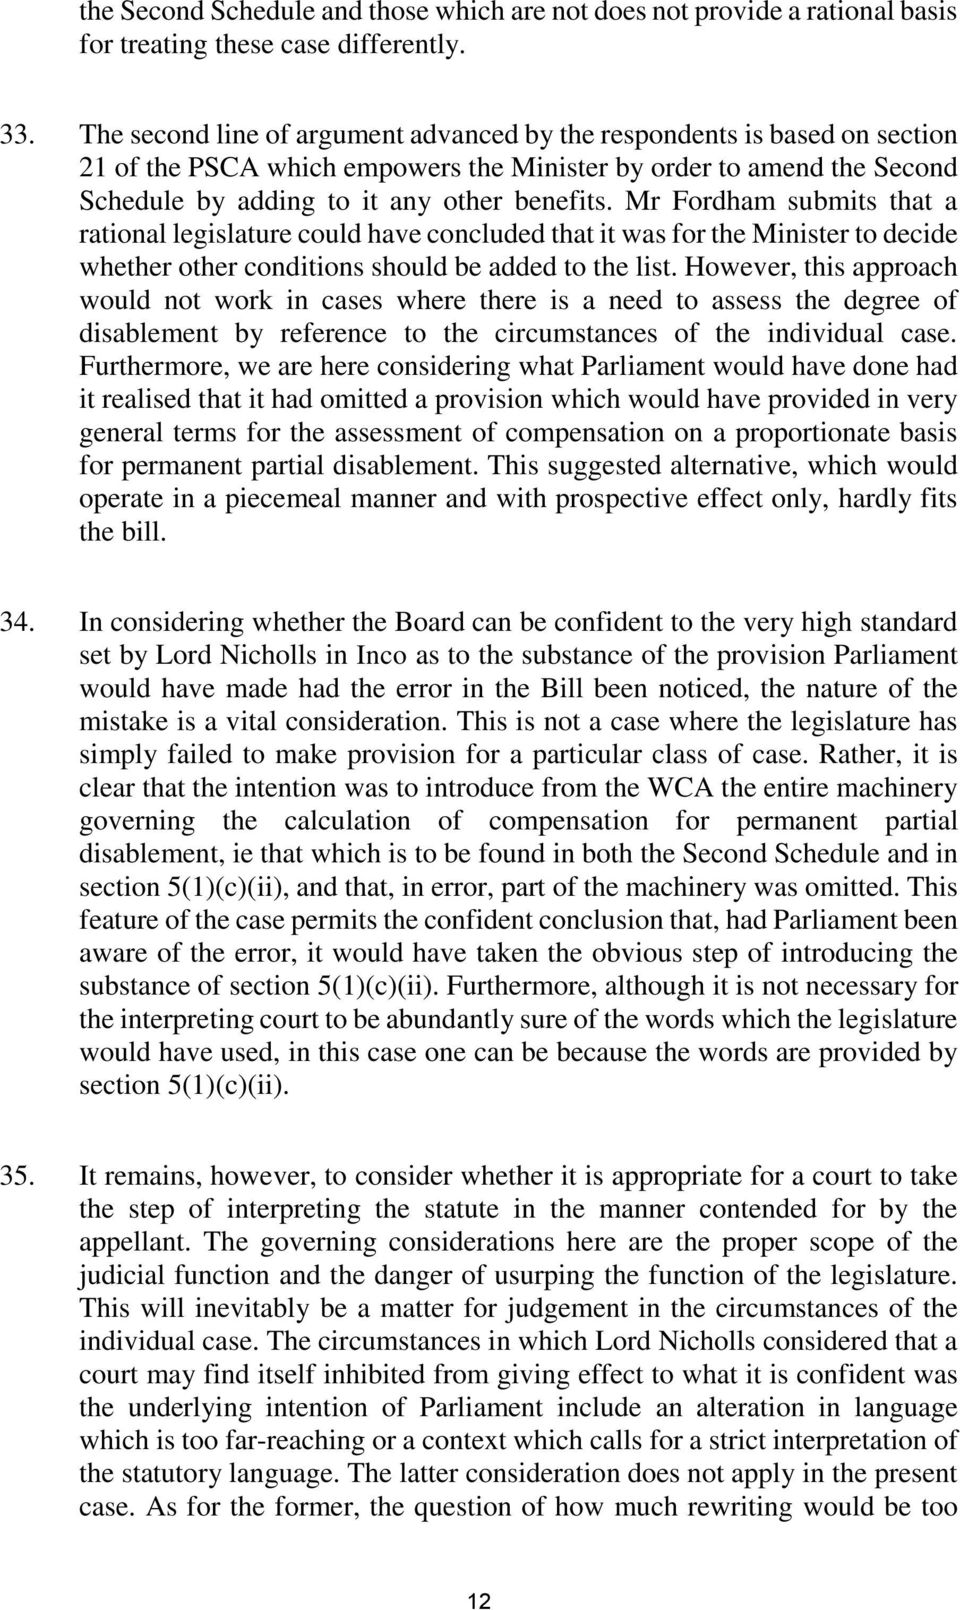 Mr Fordham submits that a rational legislature could have concluded that it was for the Minister to decide whether other conditions should be added to the list.